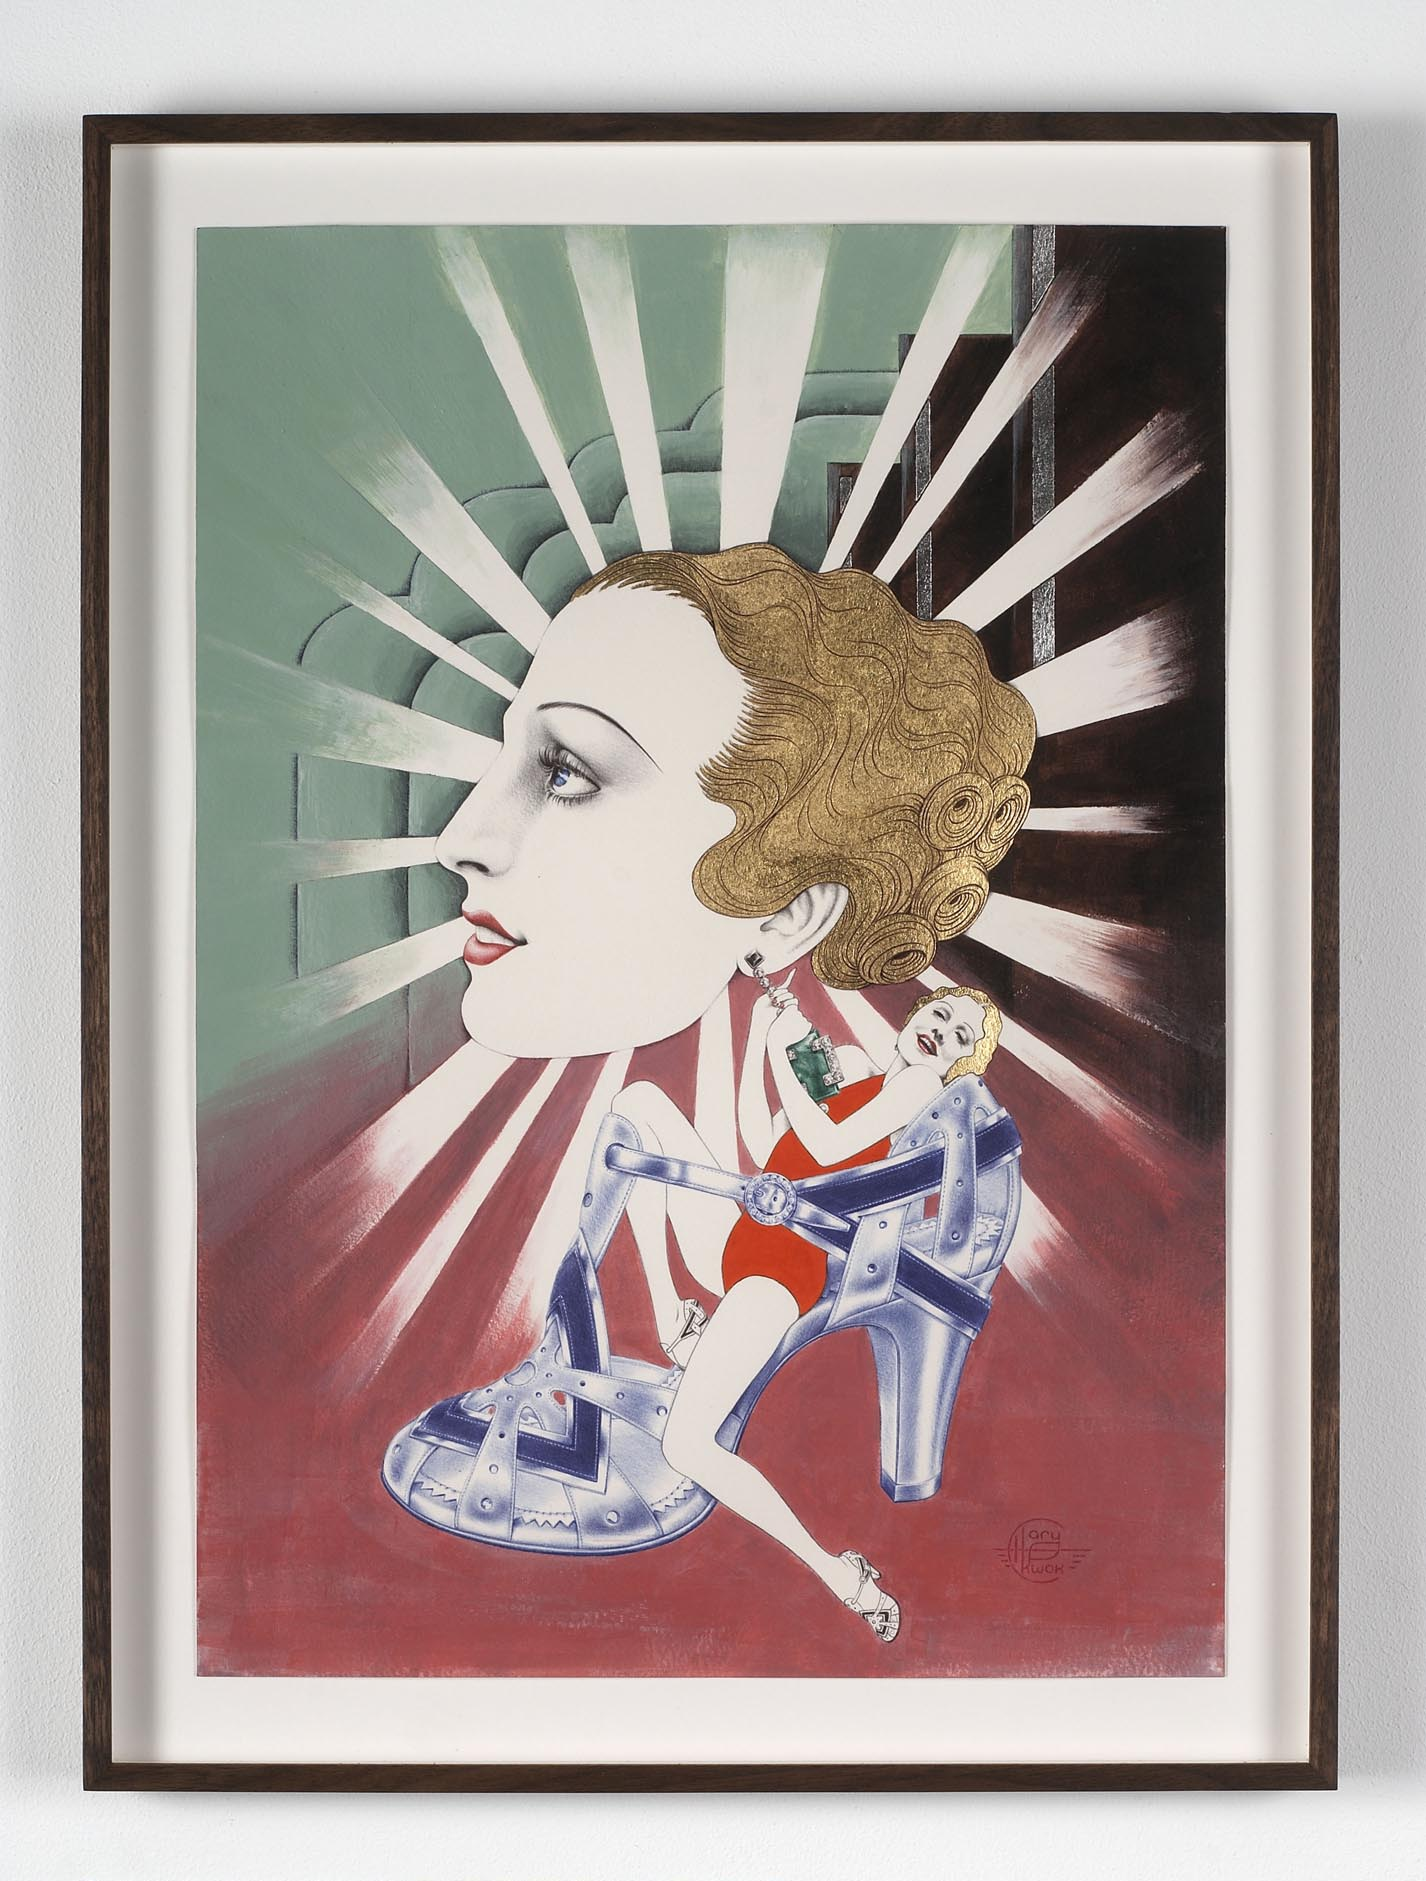 Desire - American (1930s) 2009 acrylic, ink, 23 3/4 Carat Gold leaf and silver leaf on paper 42 x 29.7 cm